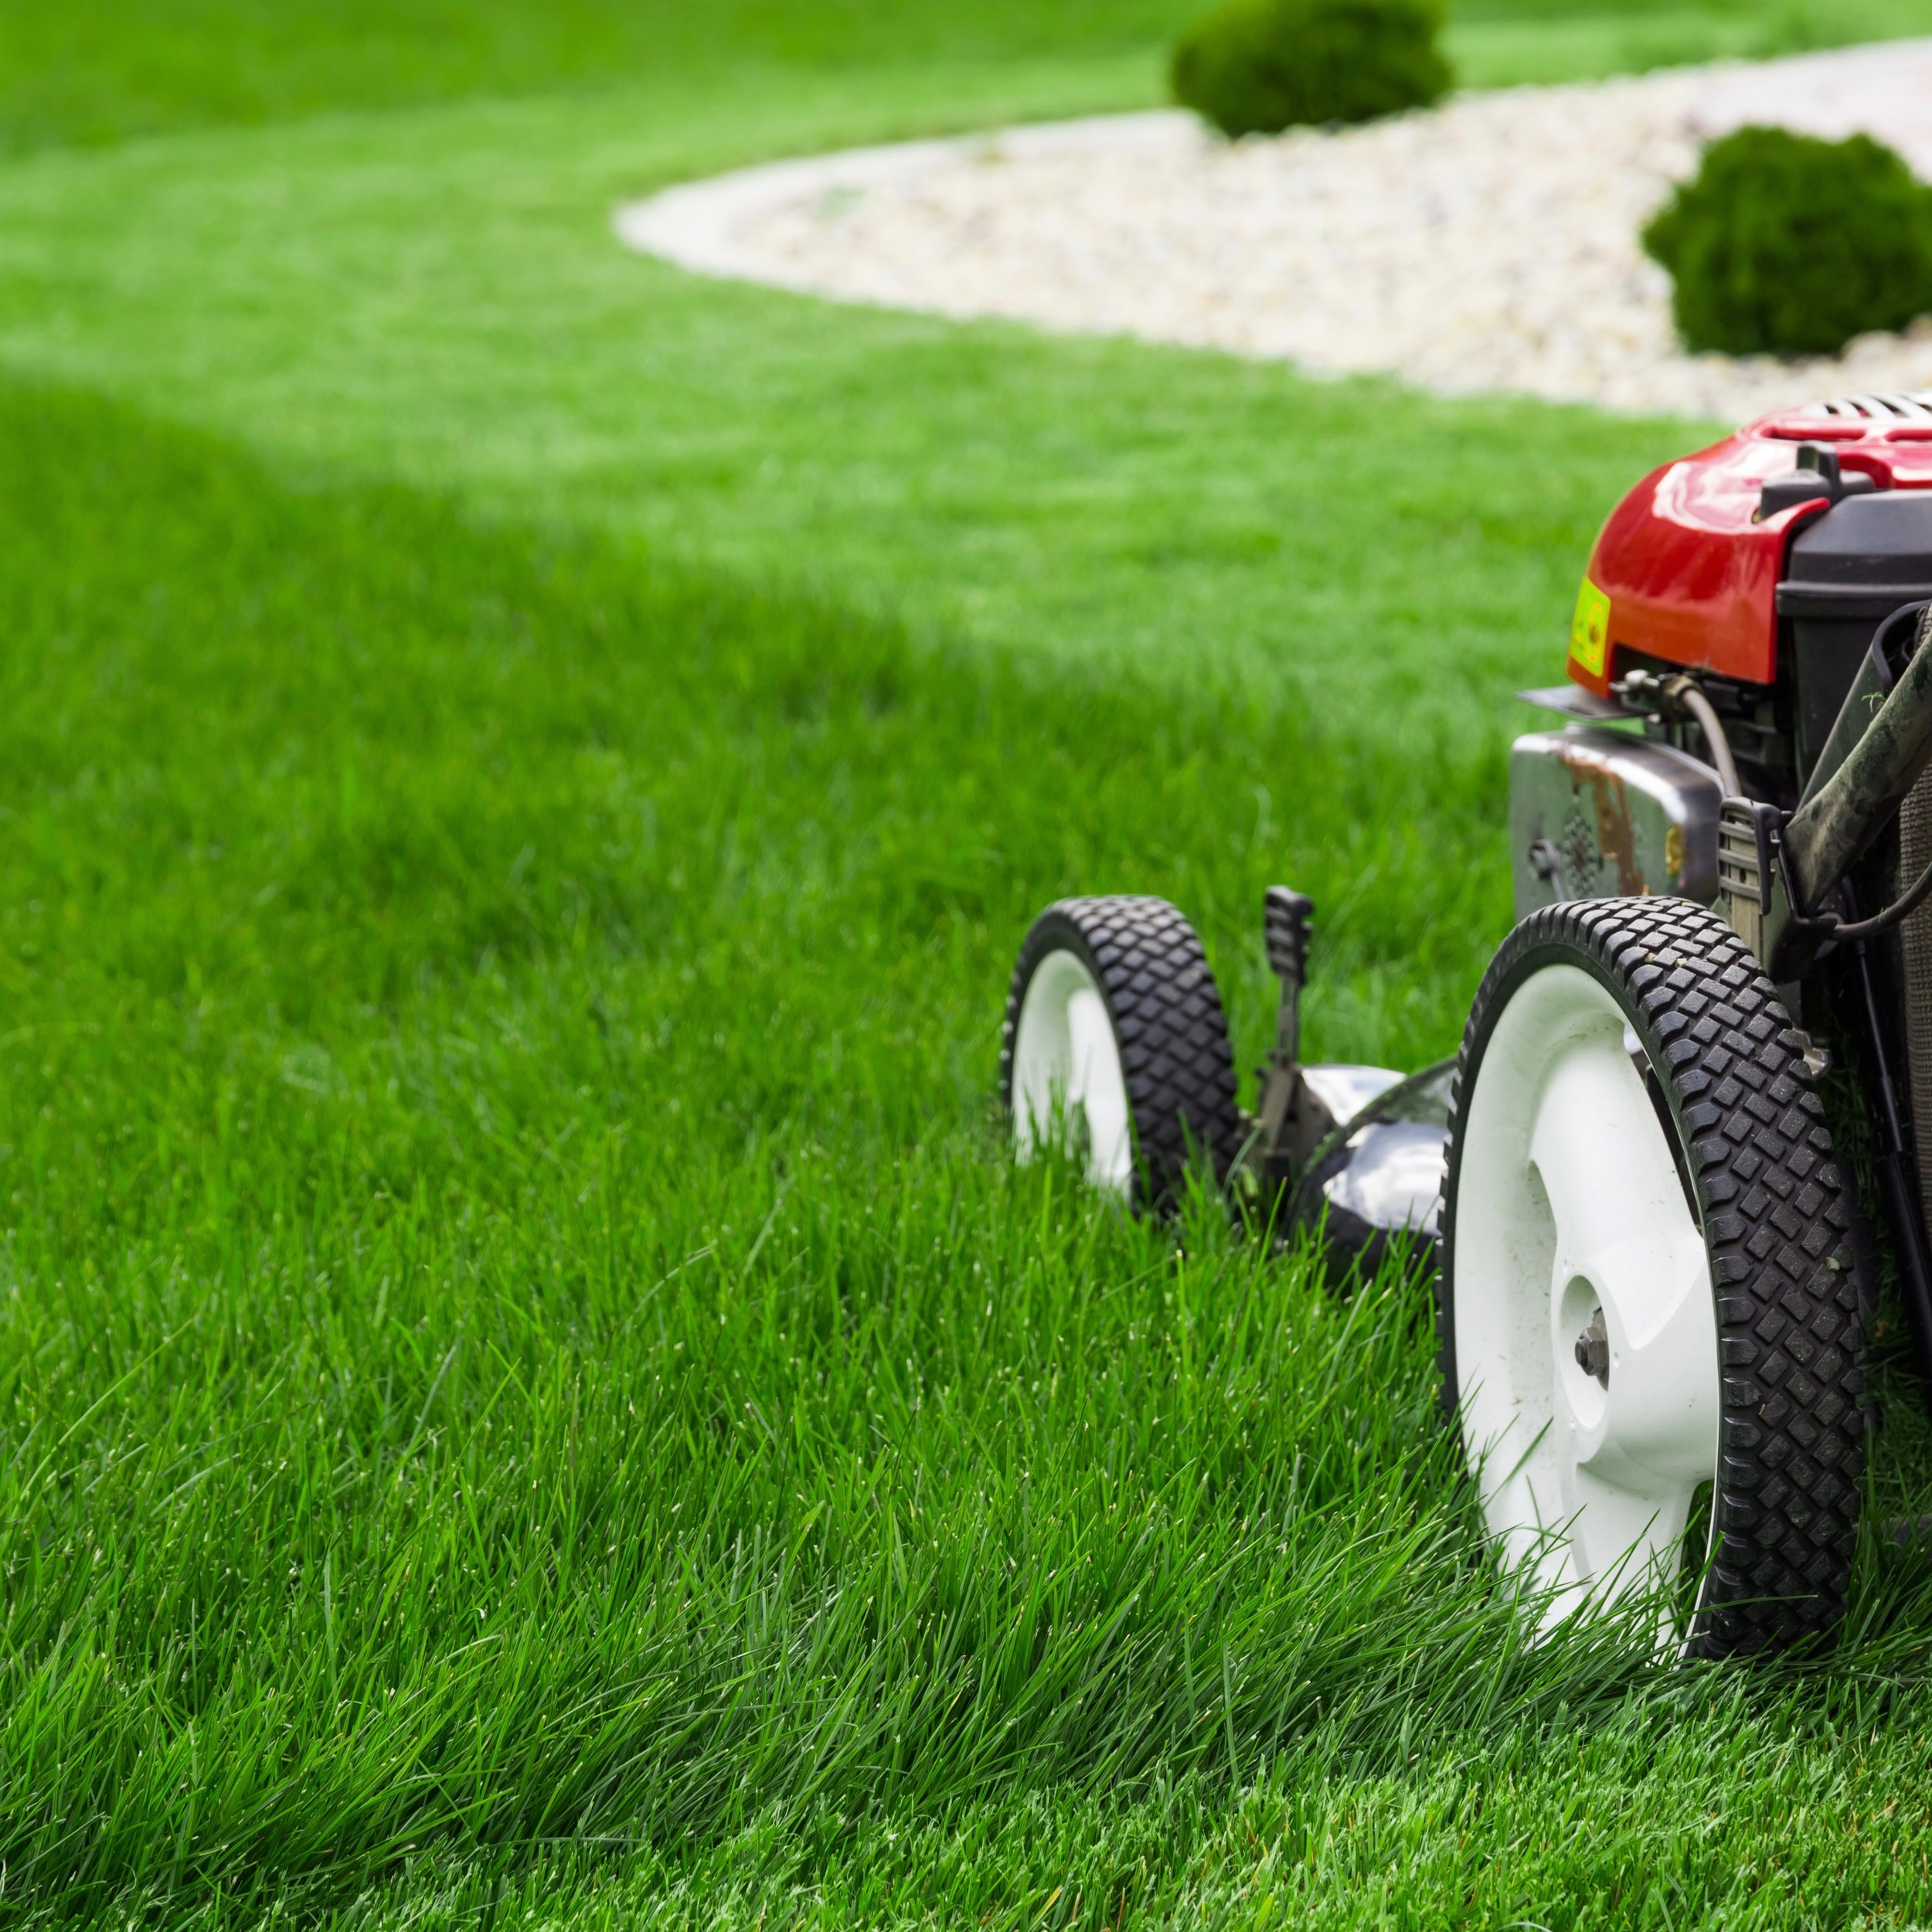 Just a bit off the top. - Give your lawn a trim — but only the top 1/3.